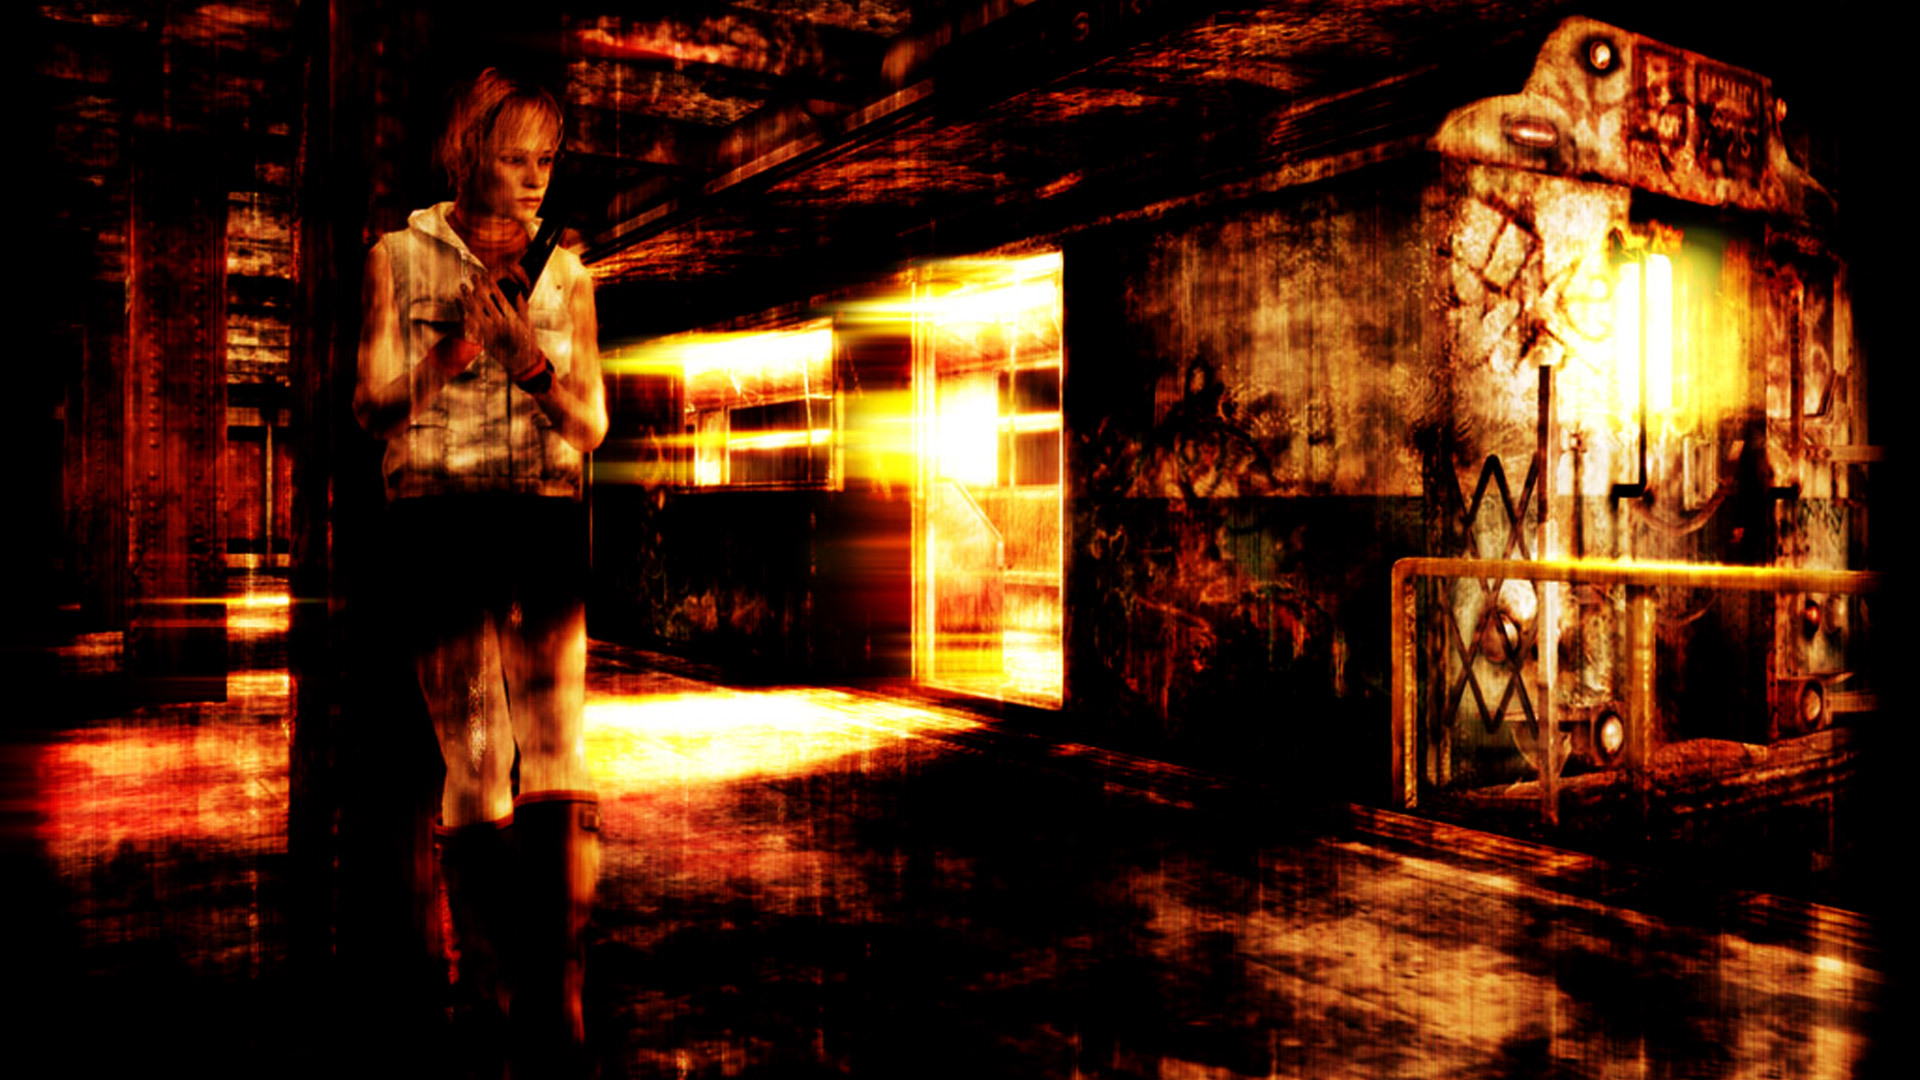 Free Silent Hill 3 Wallpaper in 1920x1080